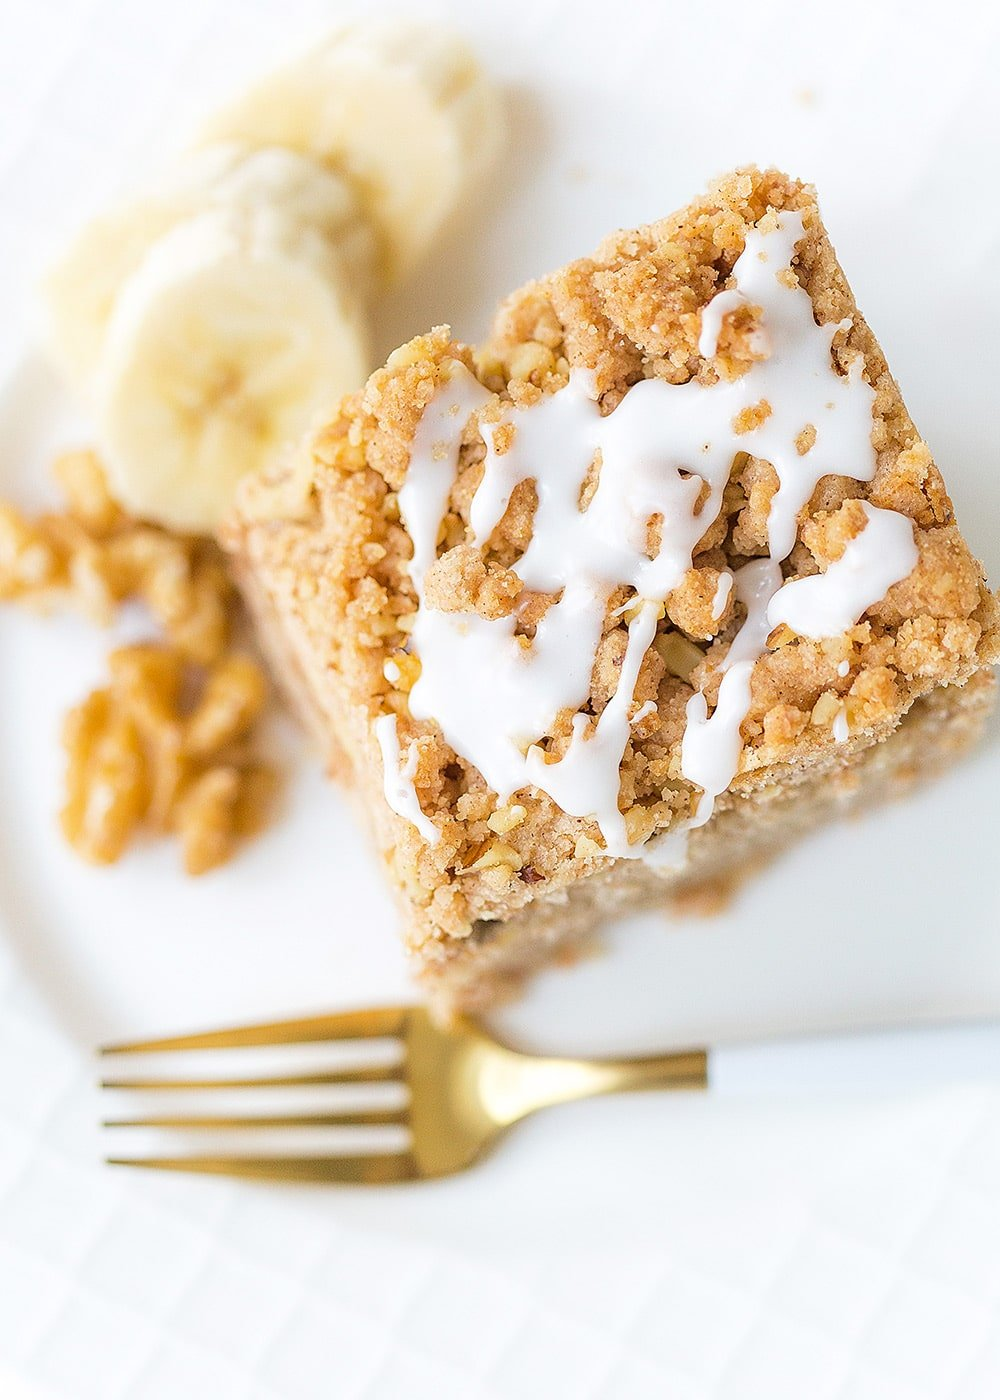 Banana Walnut Crumb Cake! Banana bread fans will love this recipe!